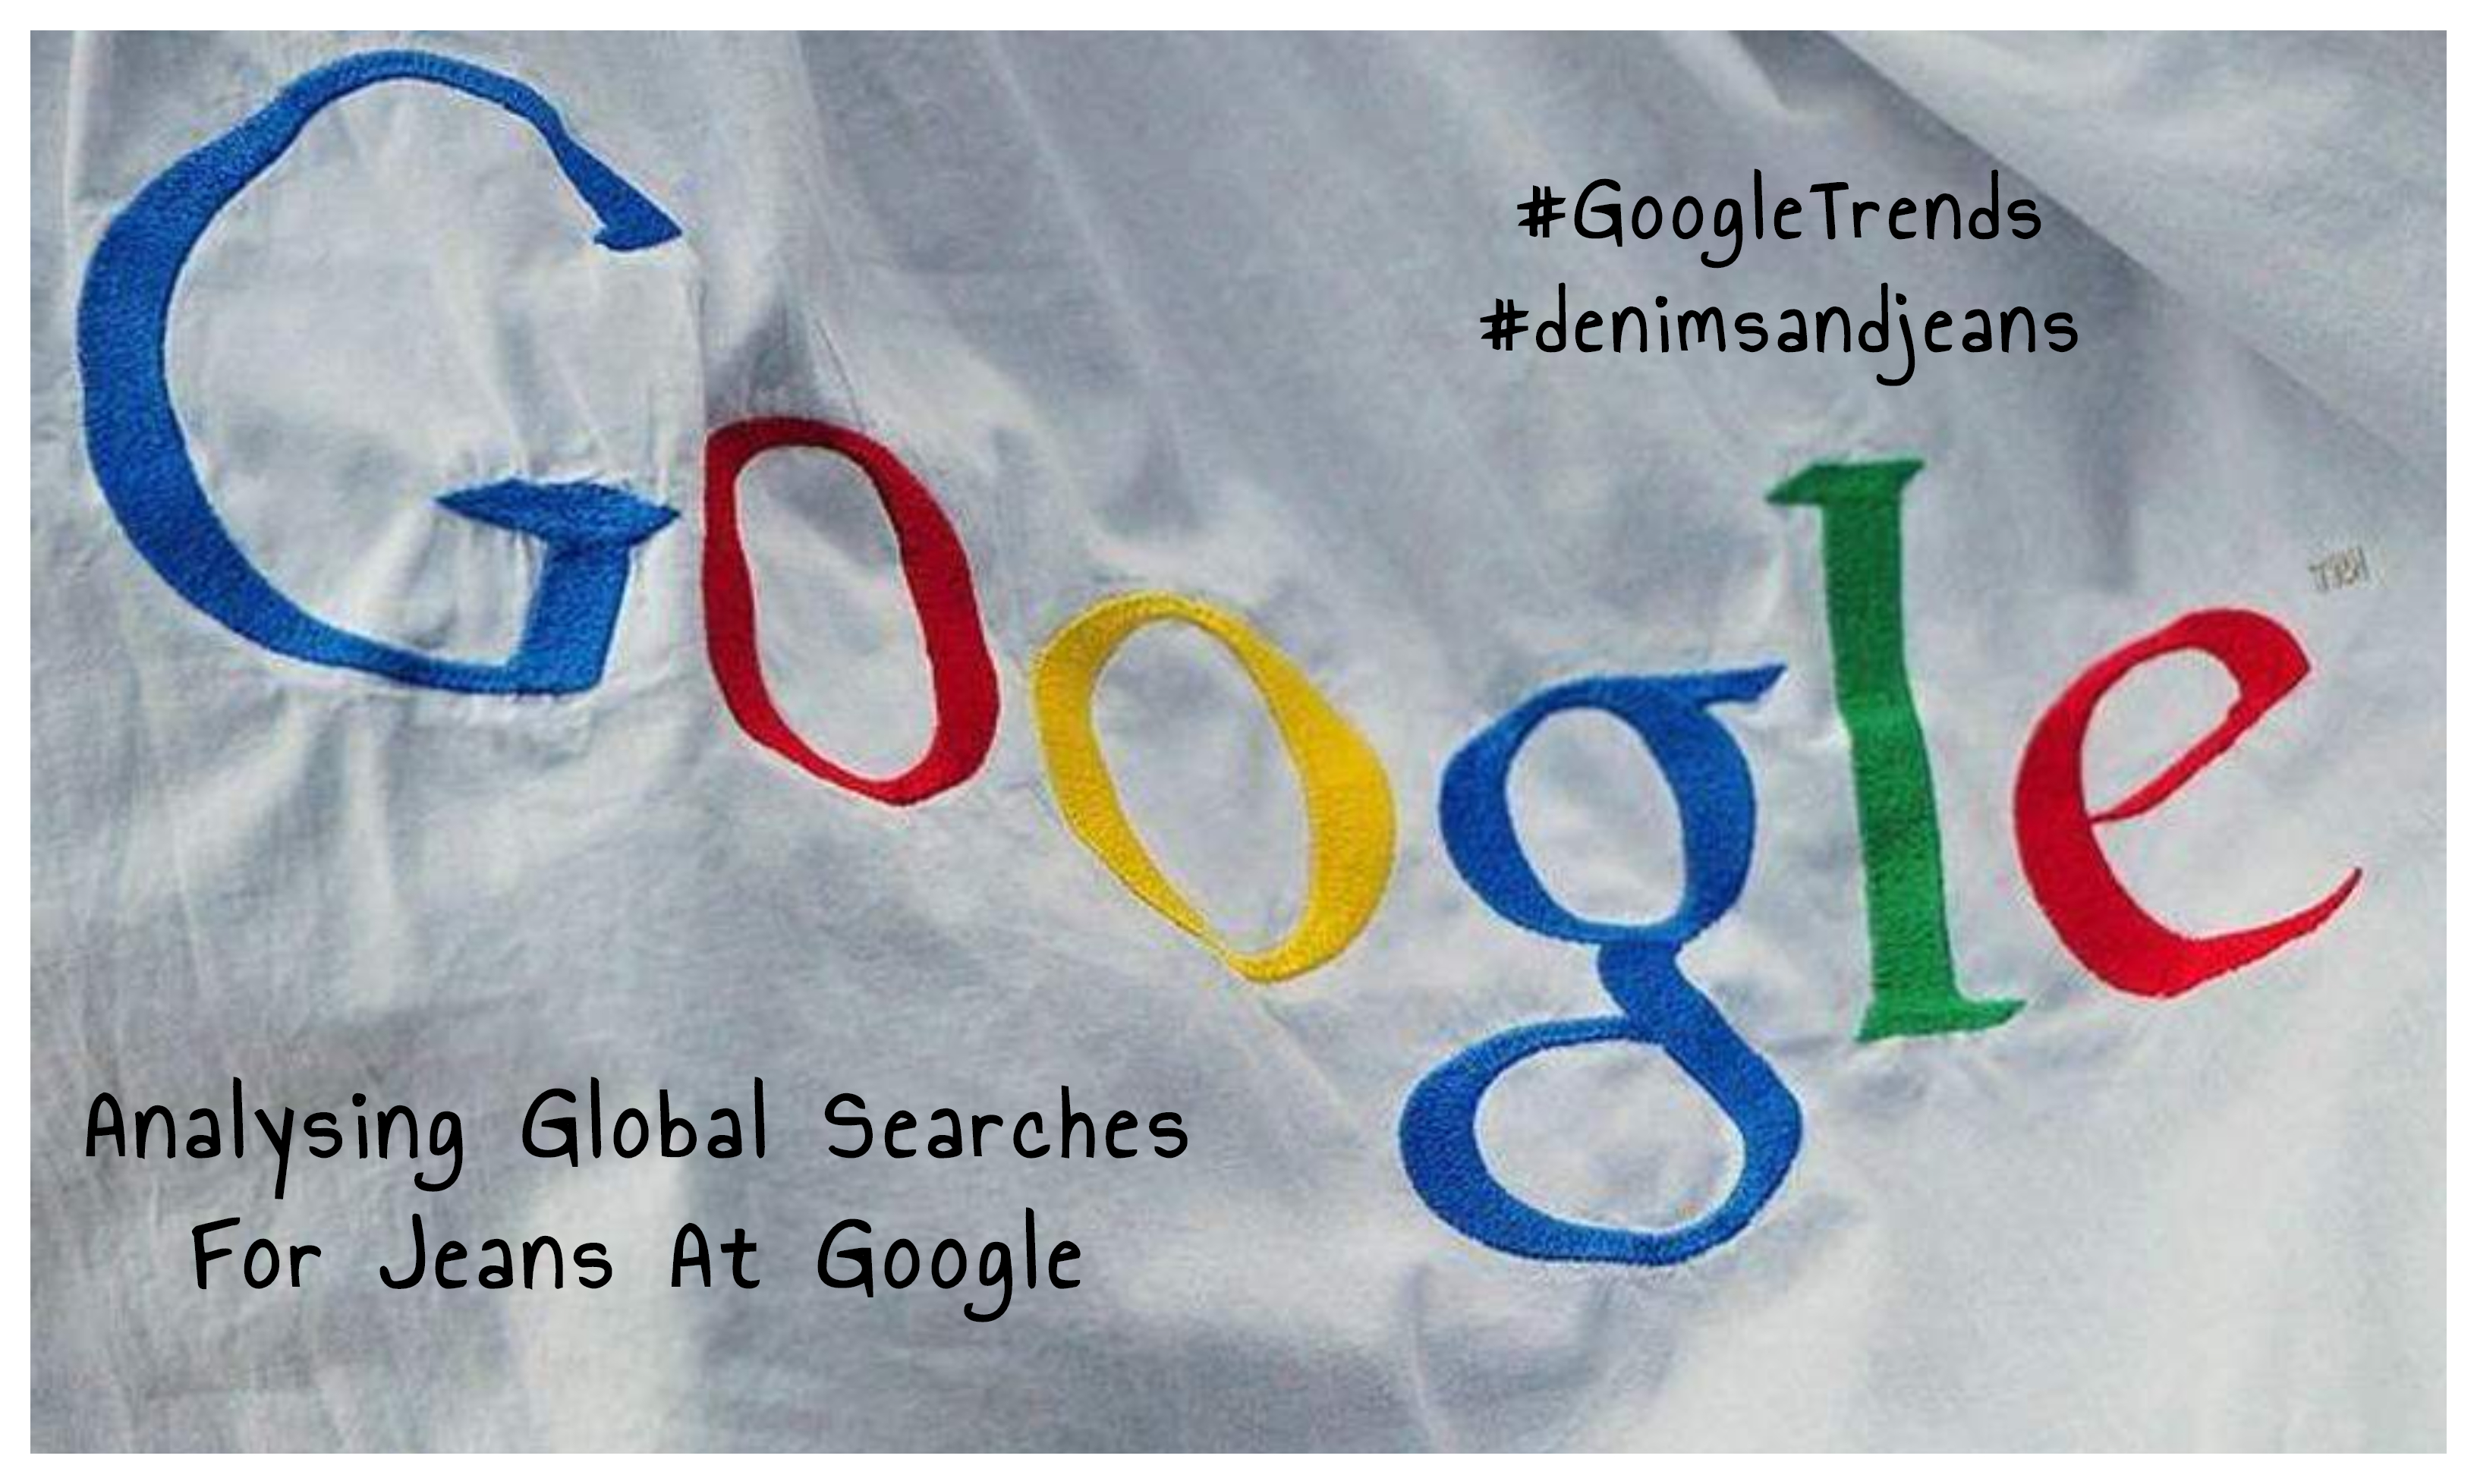 Analysing Global Searches For Jeans At Google